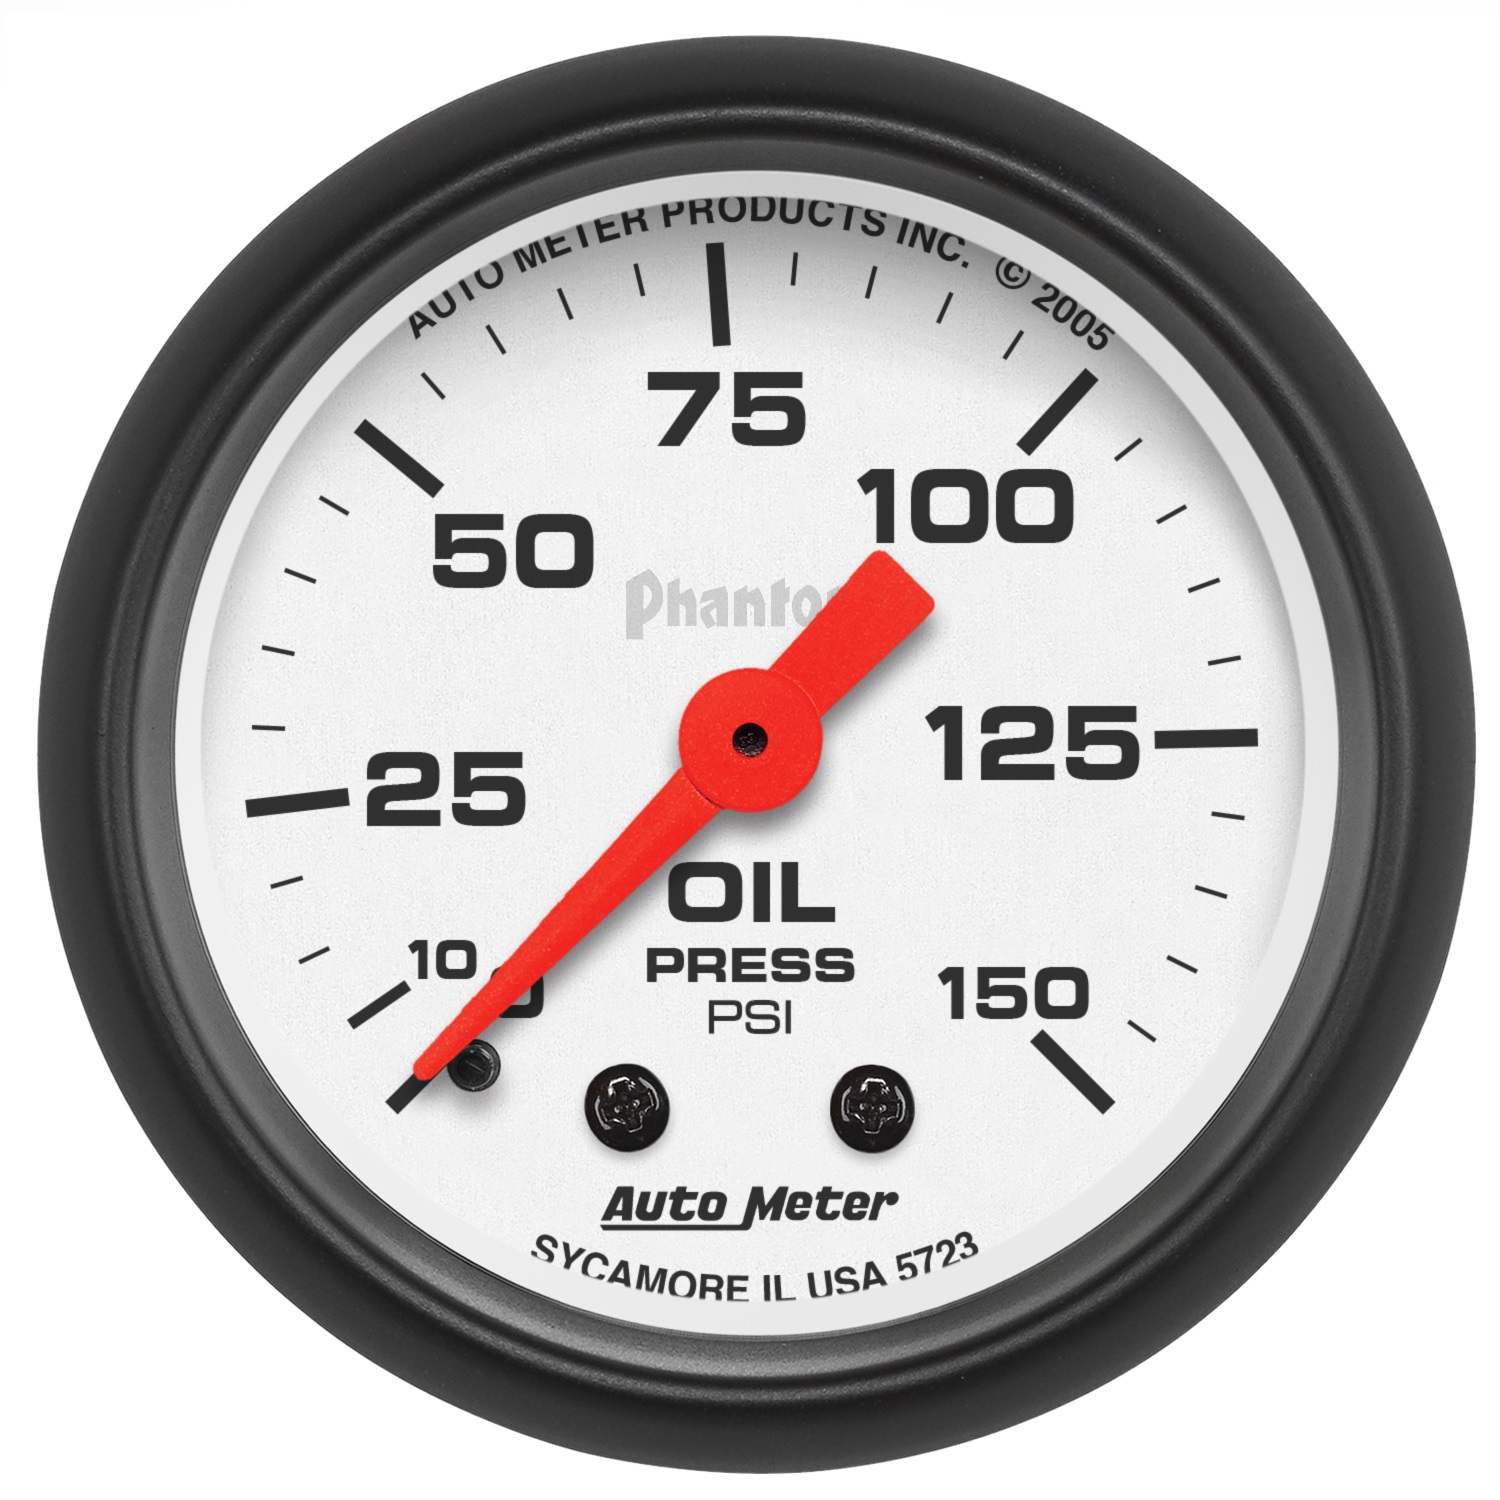 autometer oil pressure gauge instructions